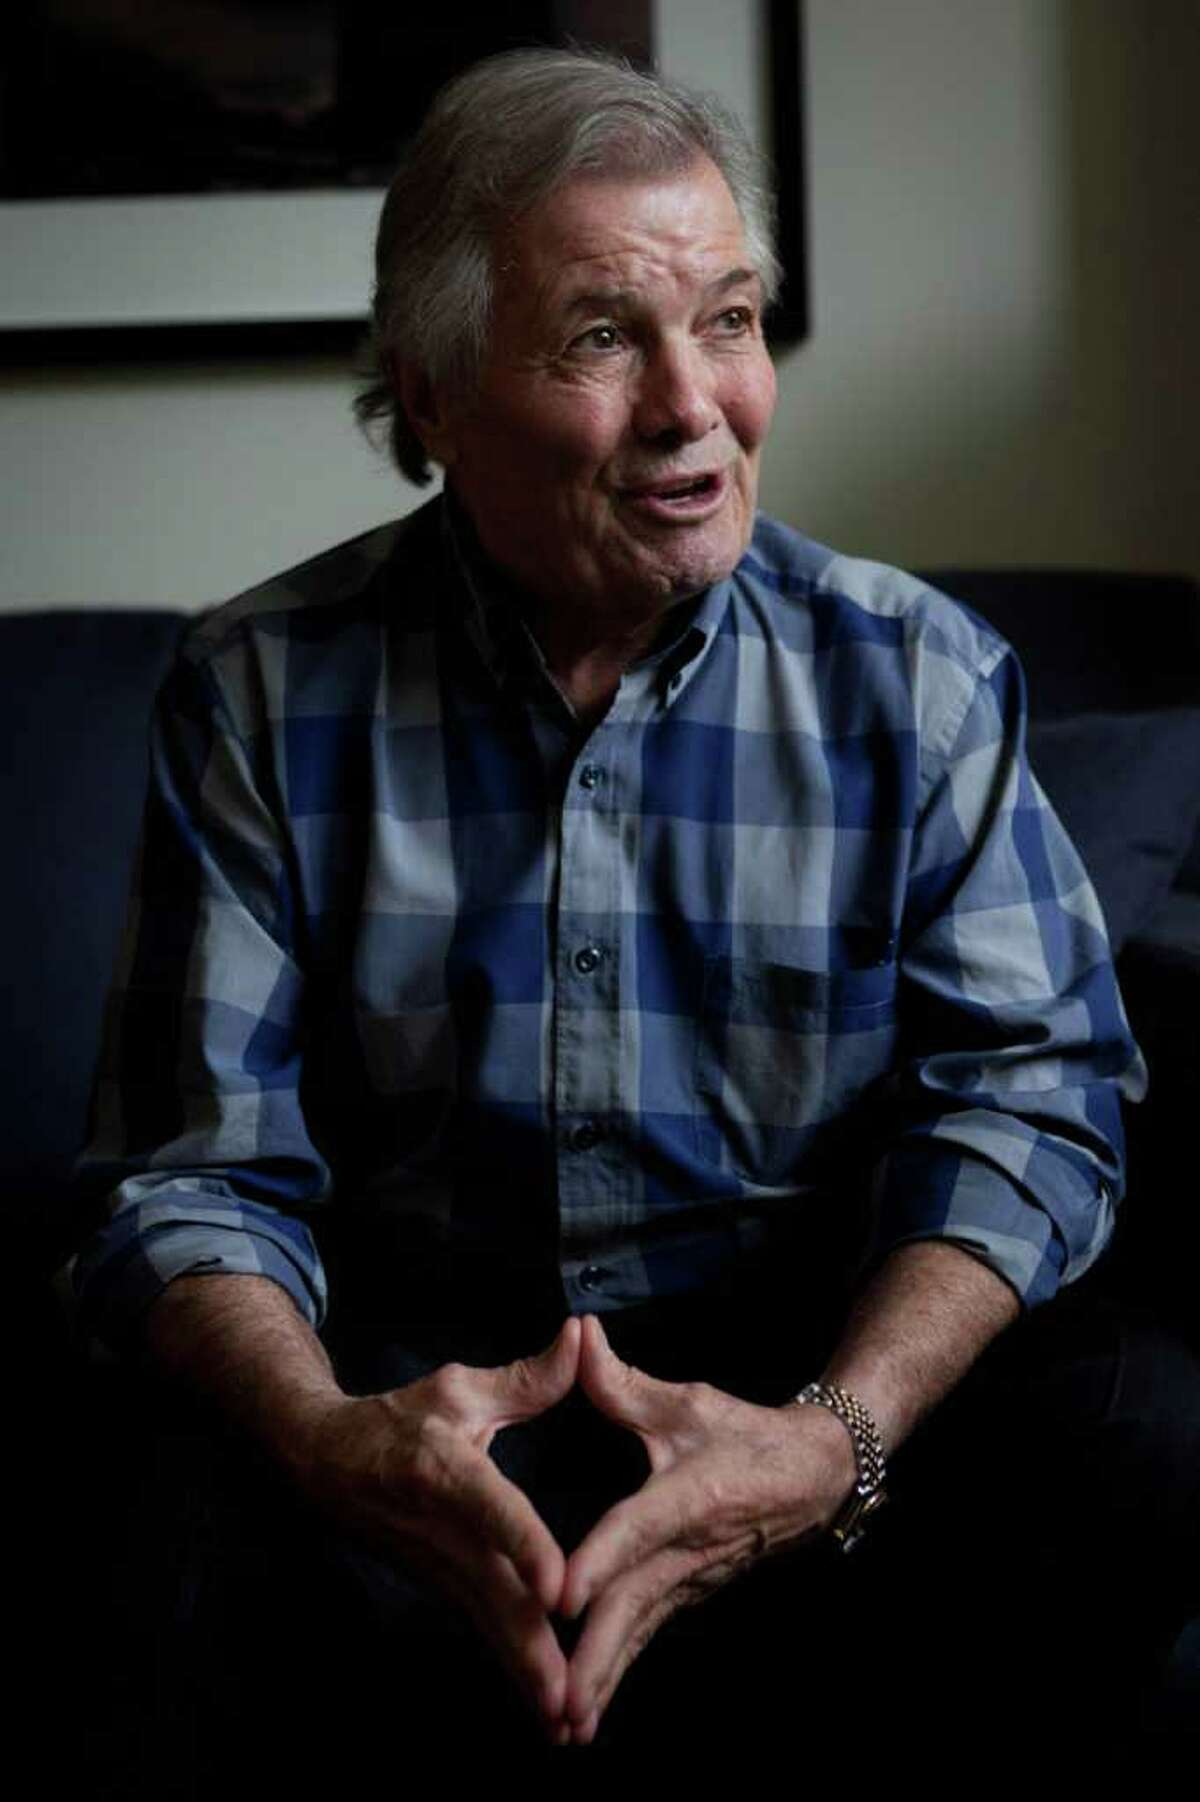 Celebrity chef Jacques Pepin will appear at the Greenwich 2011 Food + Wine Festival this weekend at Roger Sherman Baldwin Park. (AP Photo/John Minchillo)